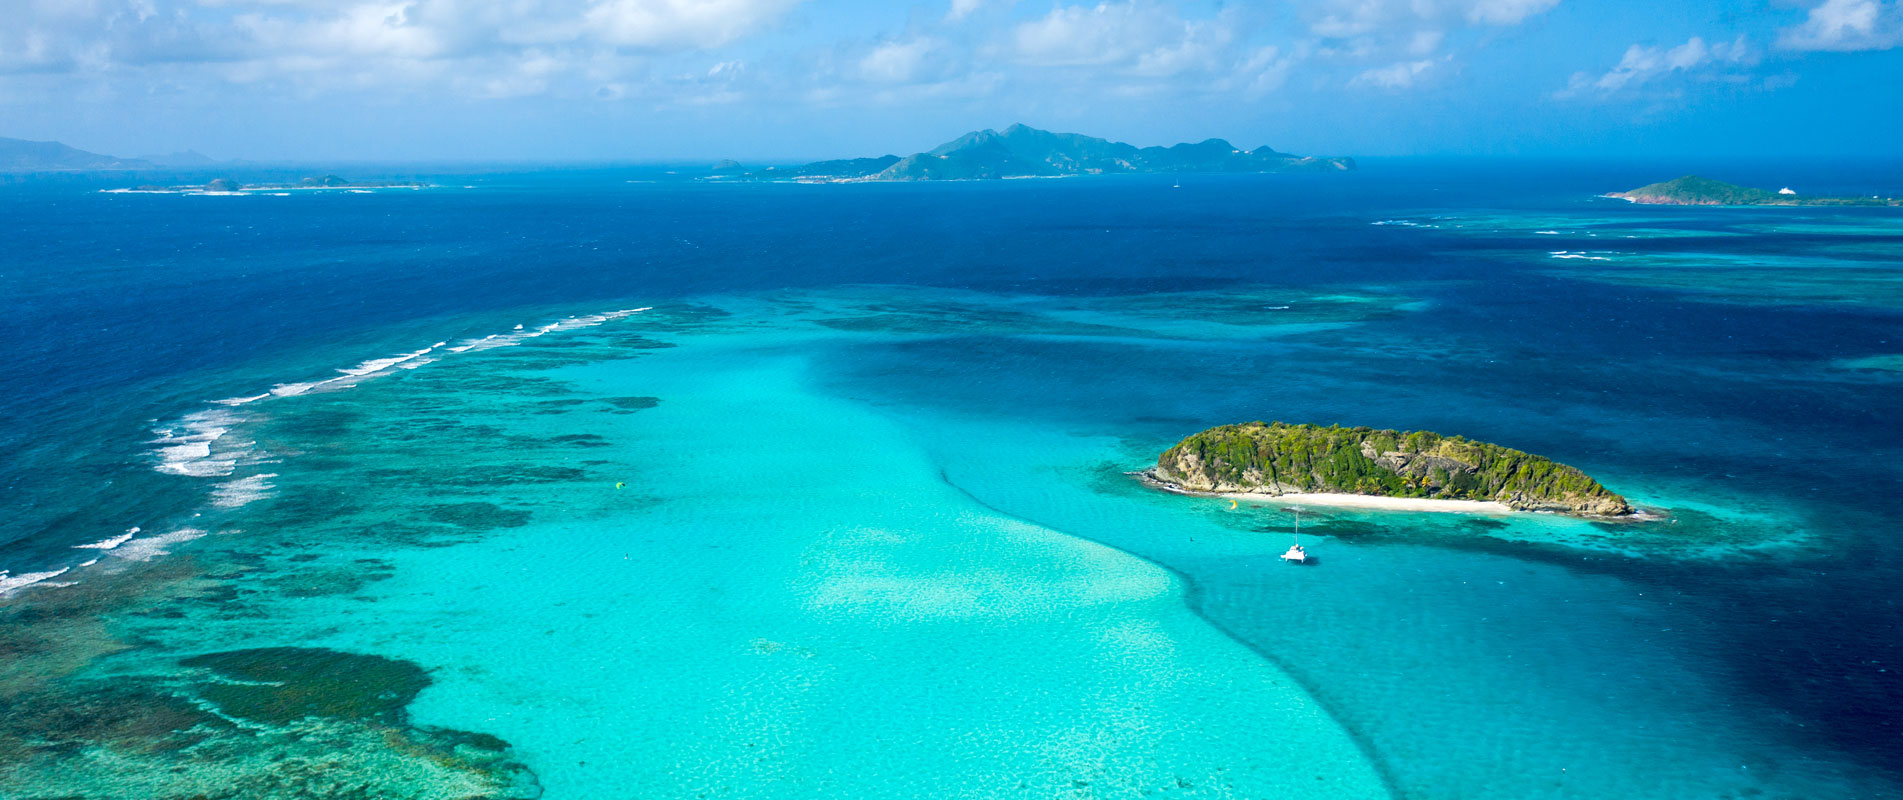 Tobago Cays in the Grenadines